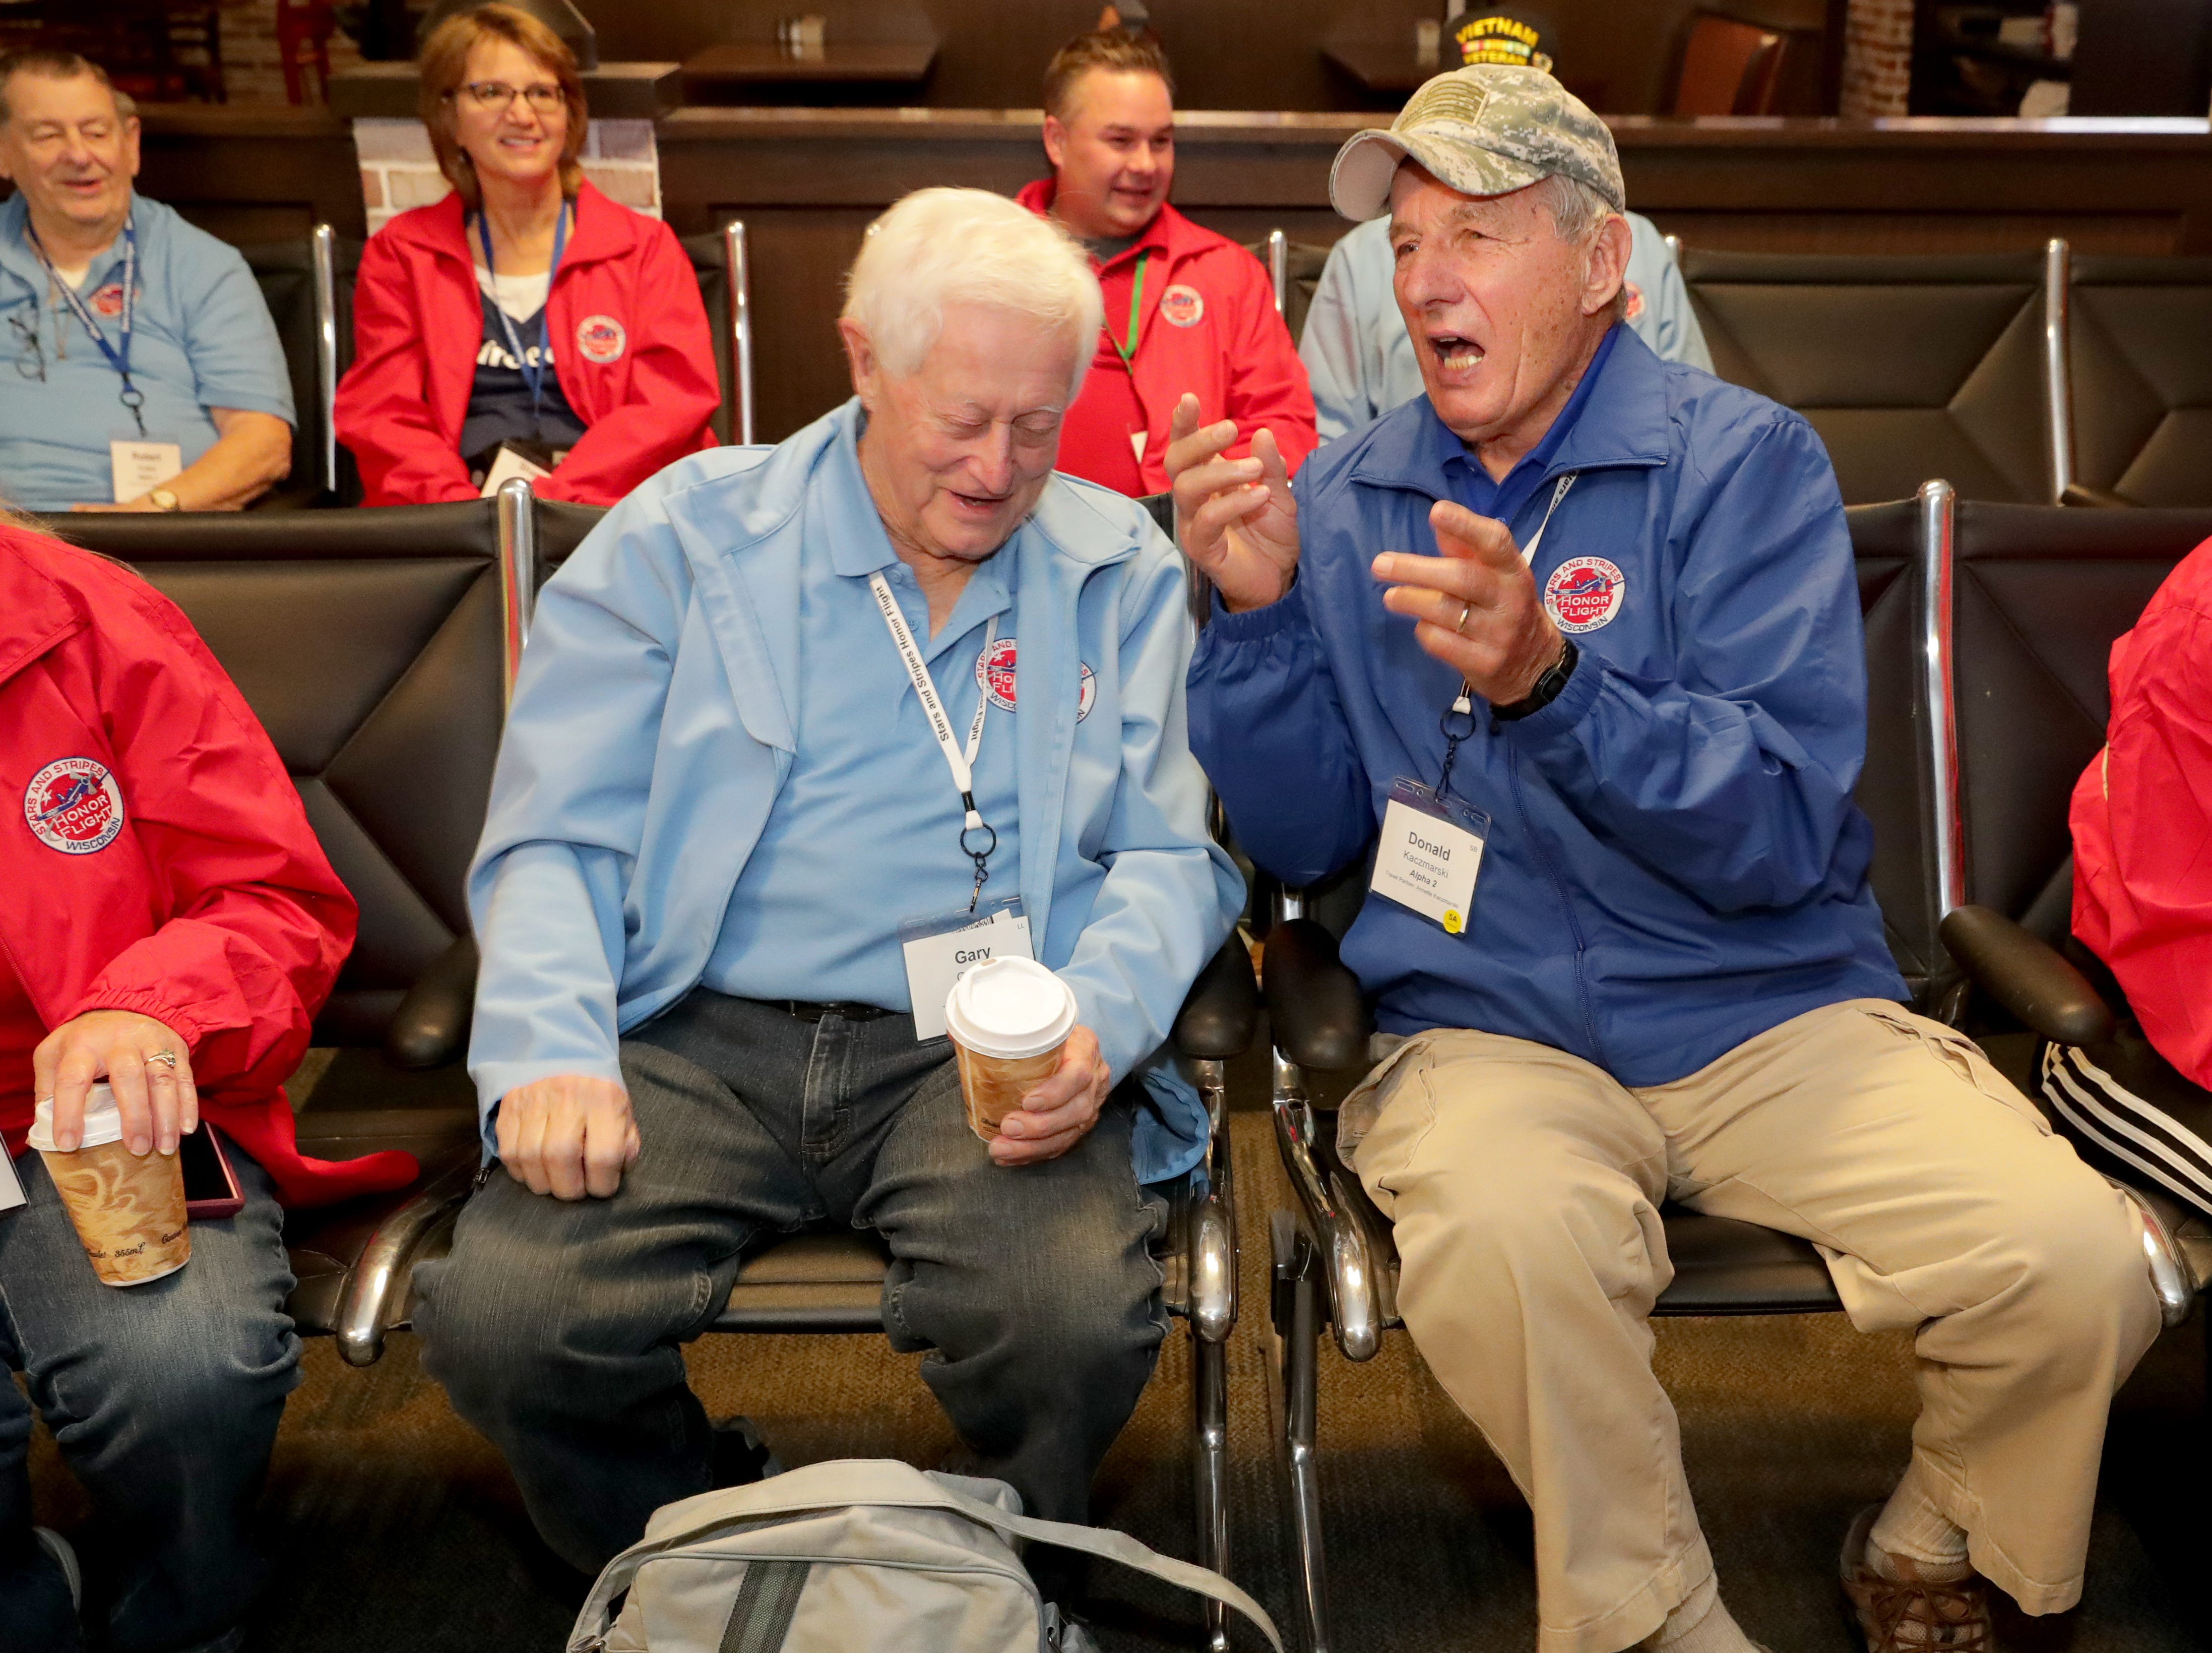 Korean War veterans Gary Grunau (left) and Donald Kaczmarski, both of the Town of Brookfield, exchange war stories while waiting for the flight to depart in Milwaukee.